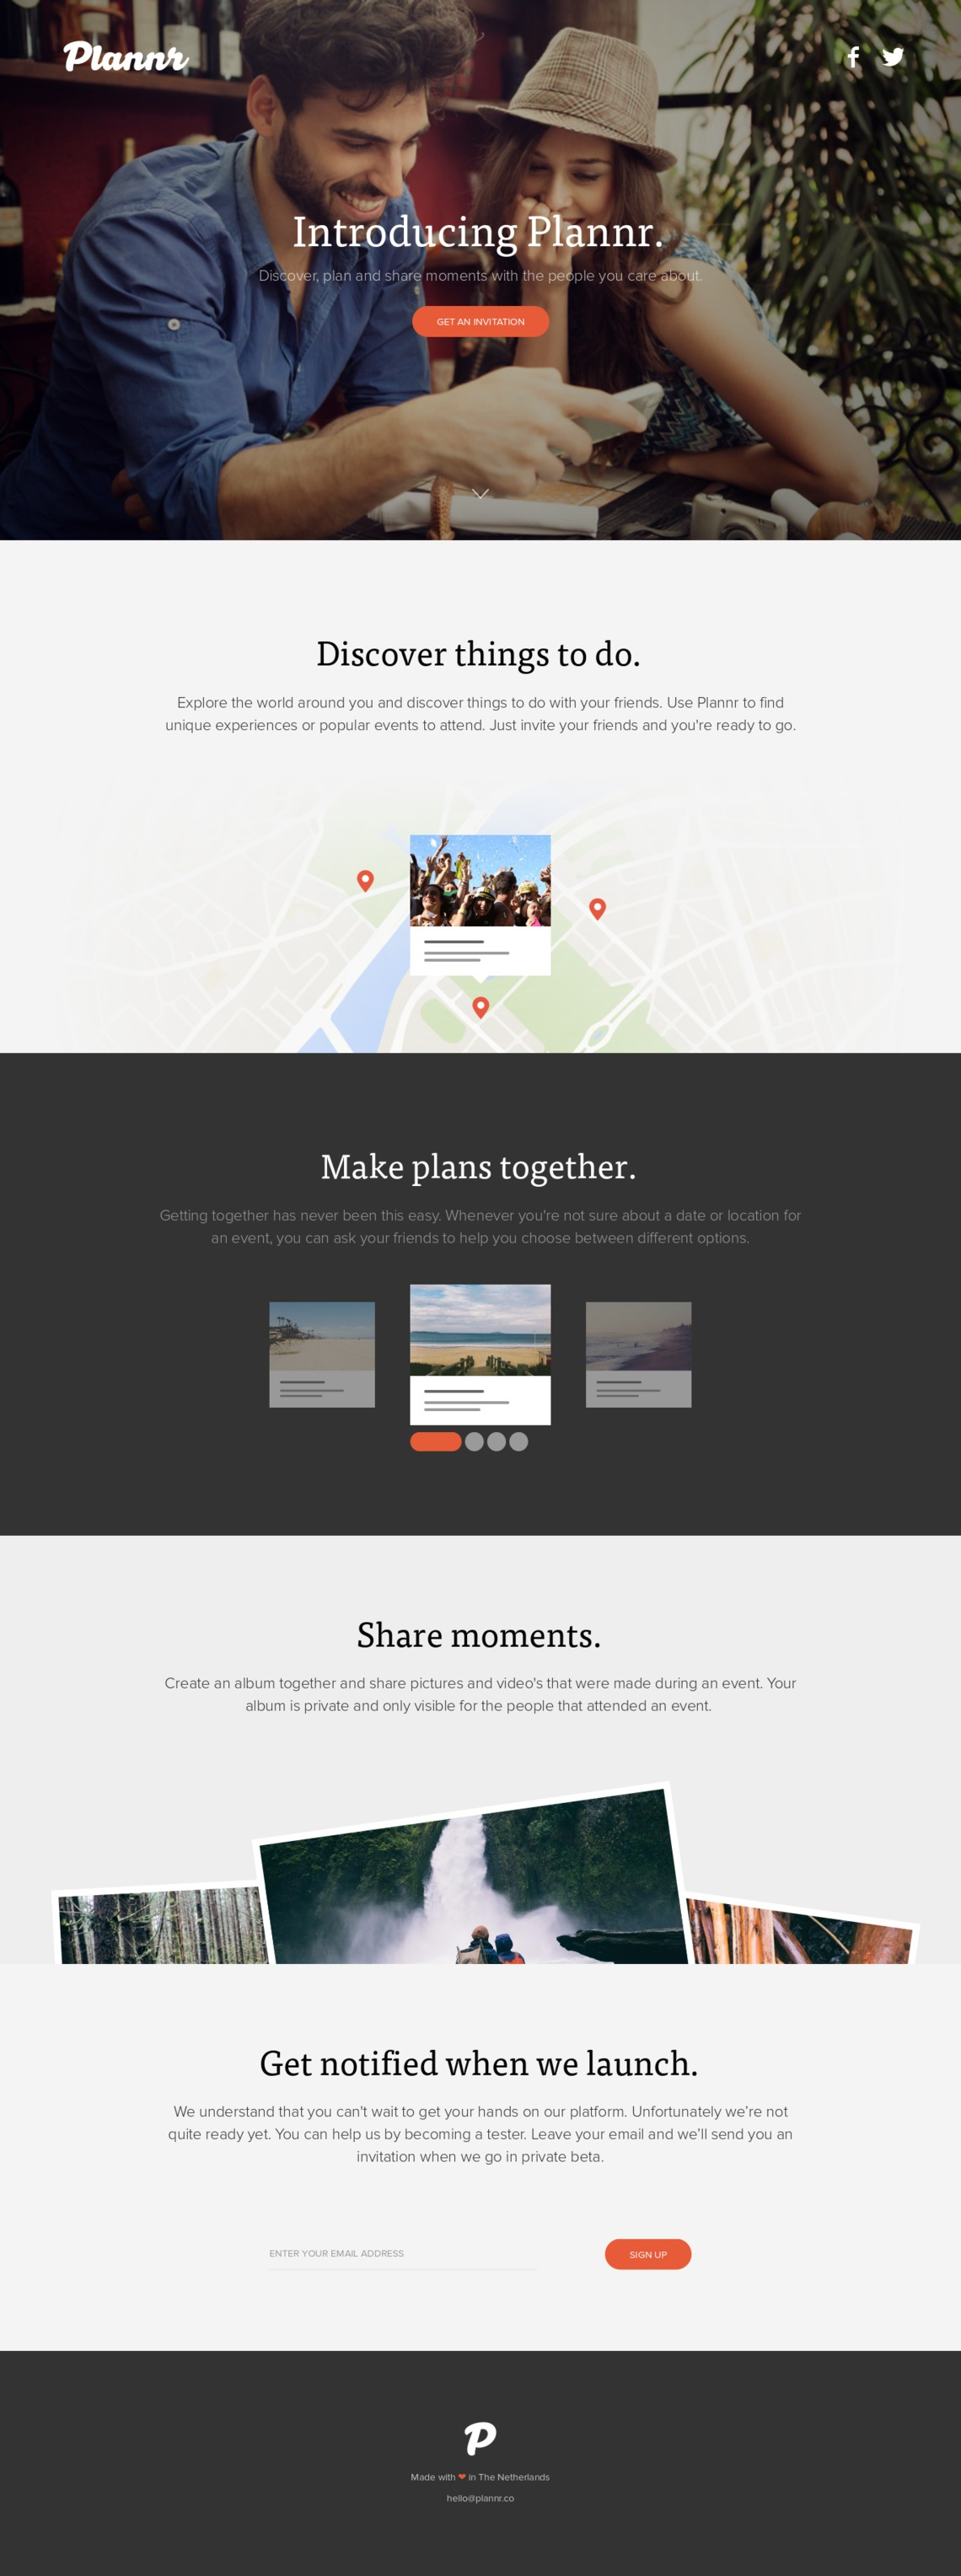 Plannr - Discover, plan and share moments with your friends.